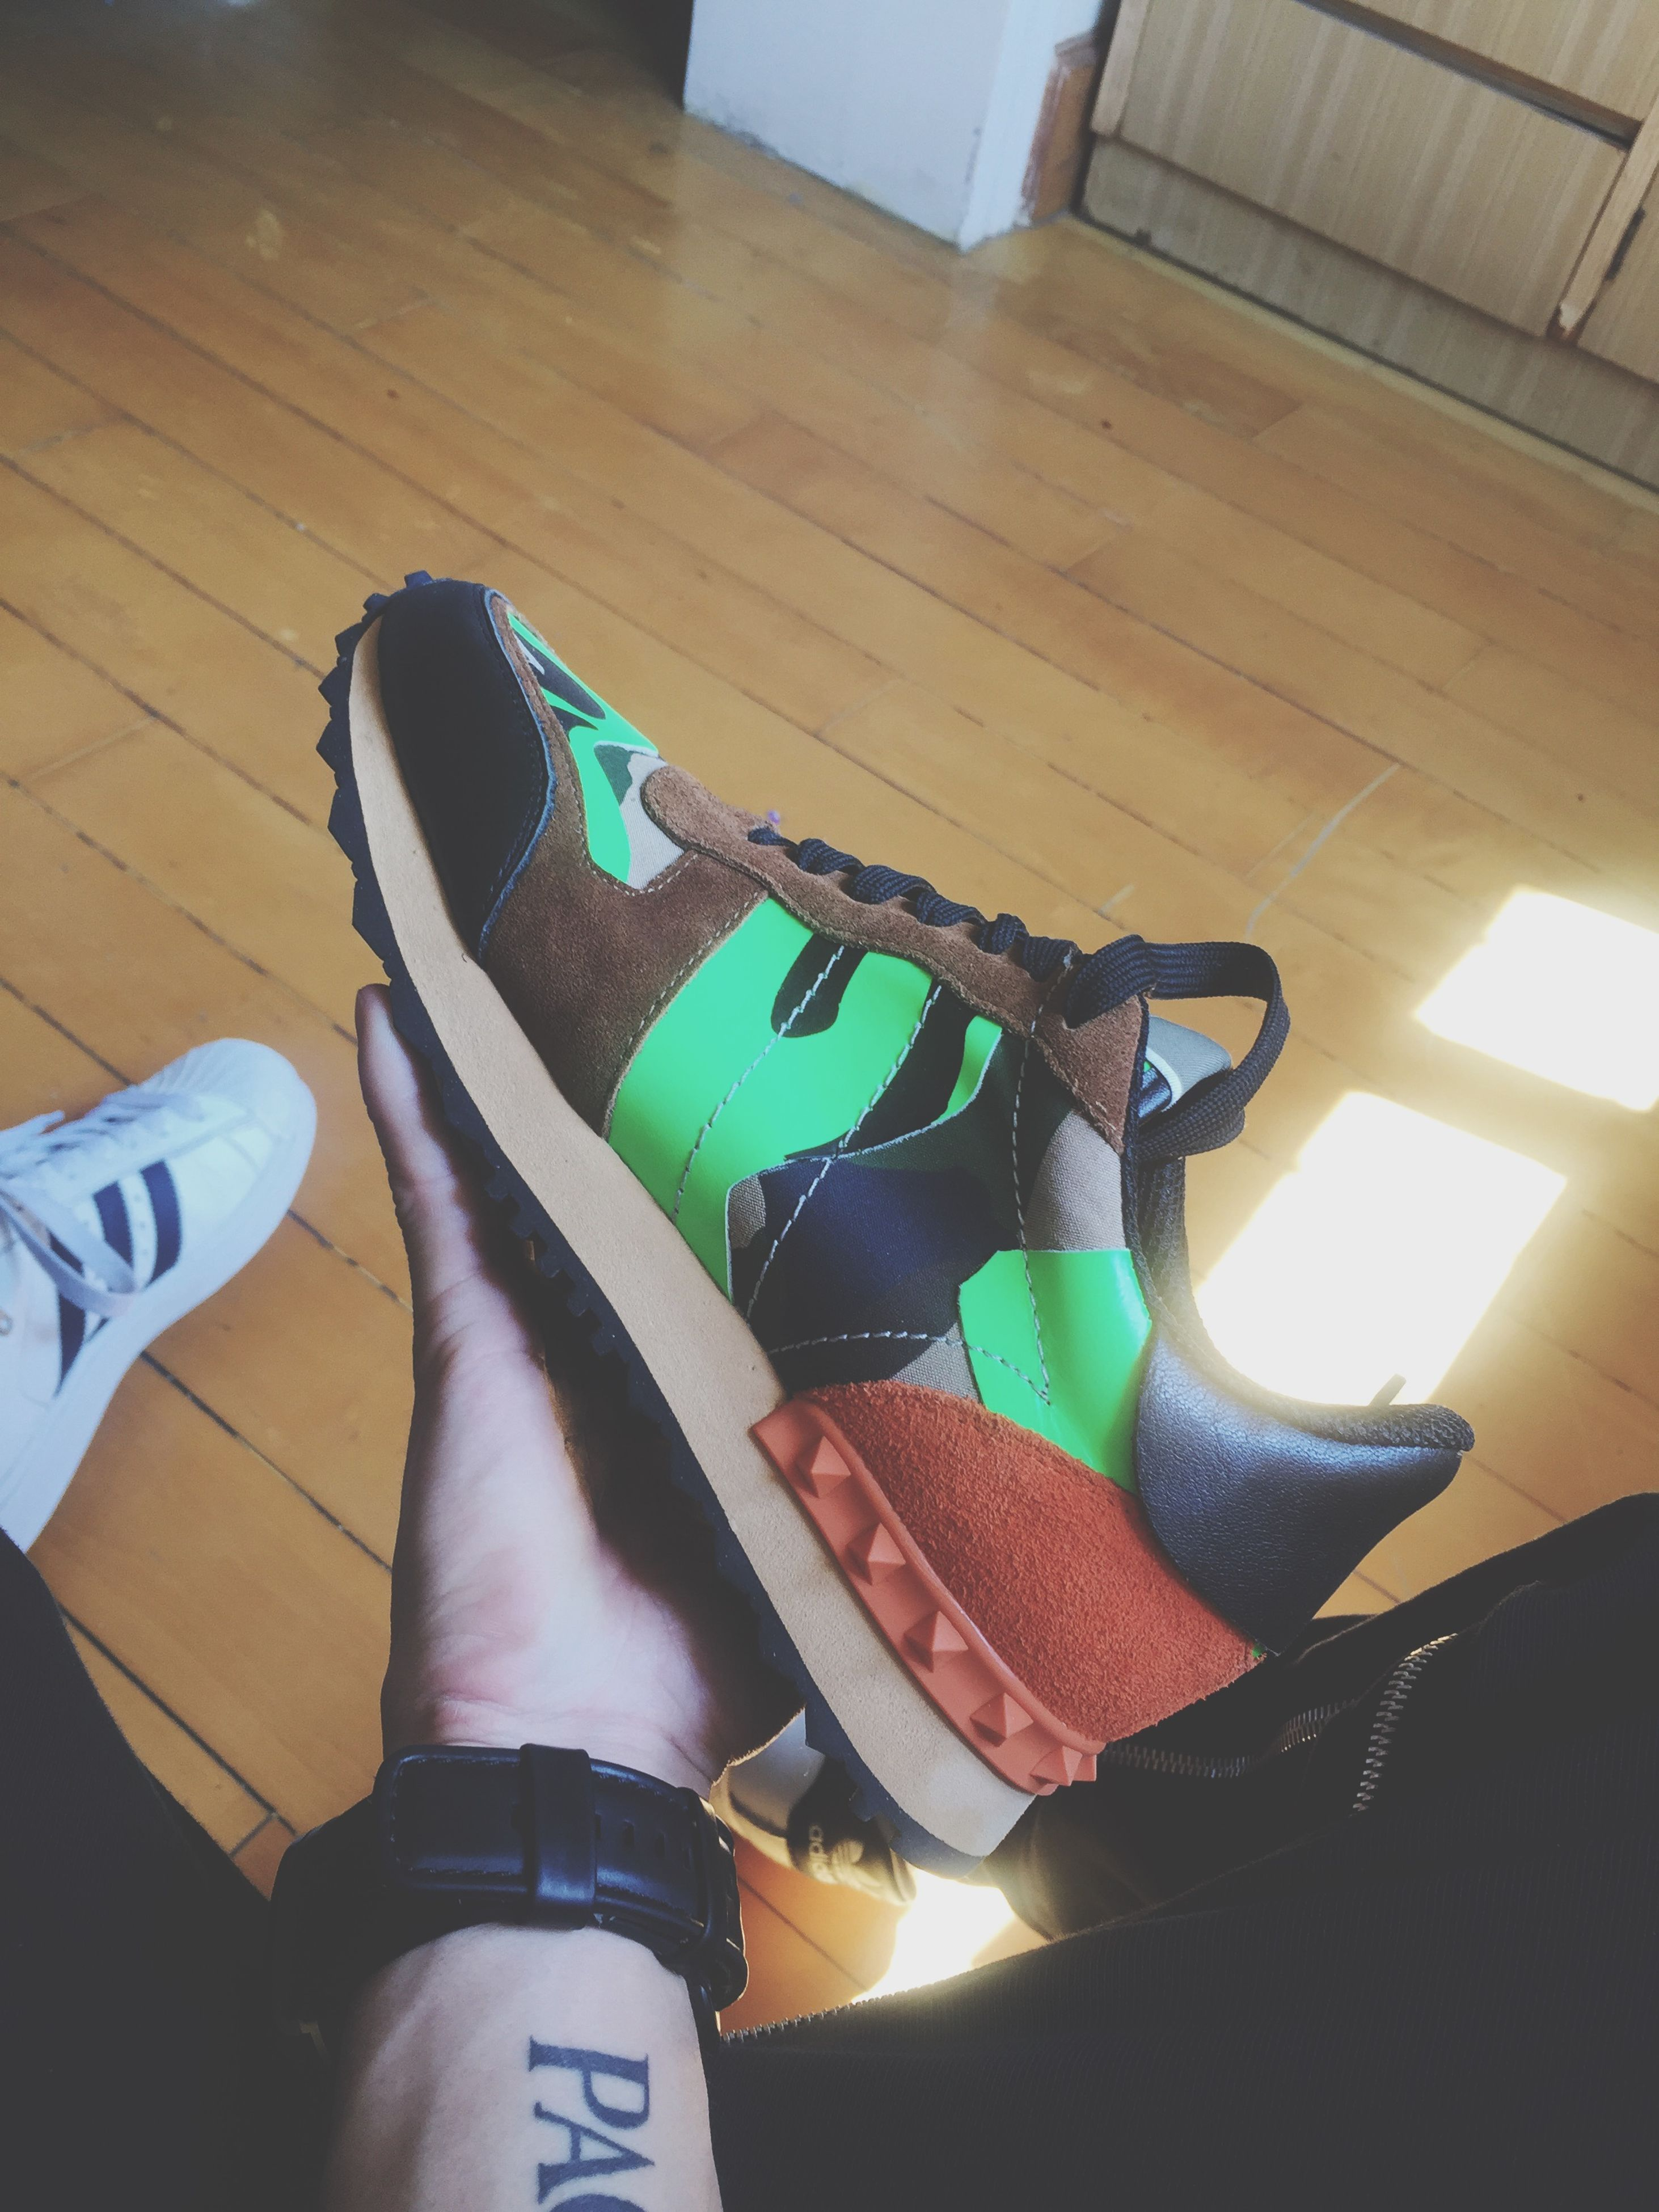 shoe, indoors, low section, high angle view, personal perspective, person, leisure activity, lifestyles, footwear, close-up, men, arts culture and entertainment, multi colored, part of, unrecognizable person, sunlight, music